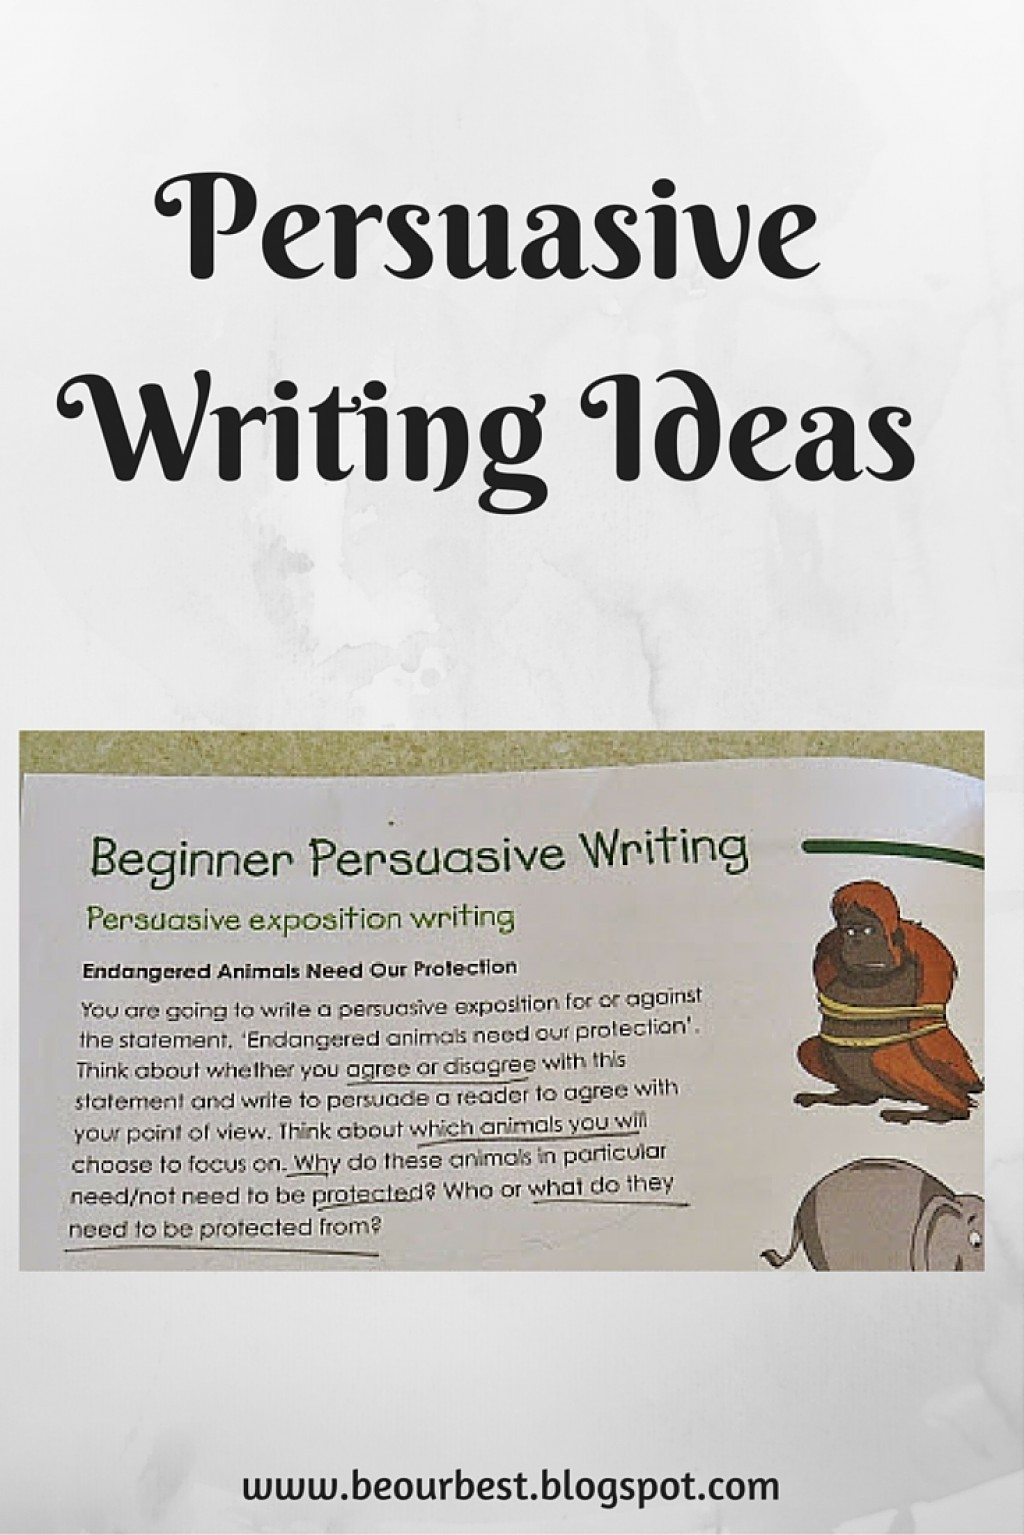 014 Topics For Persuasive Essays Essay Example Incredible 5th Graders Good A Middle Schoolers High School Large